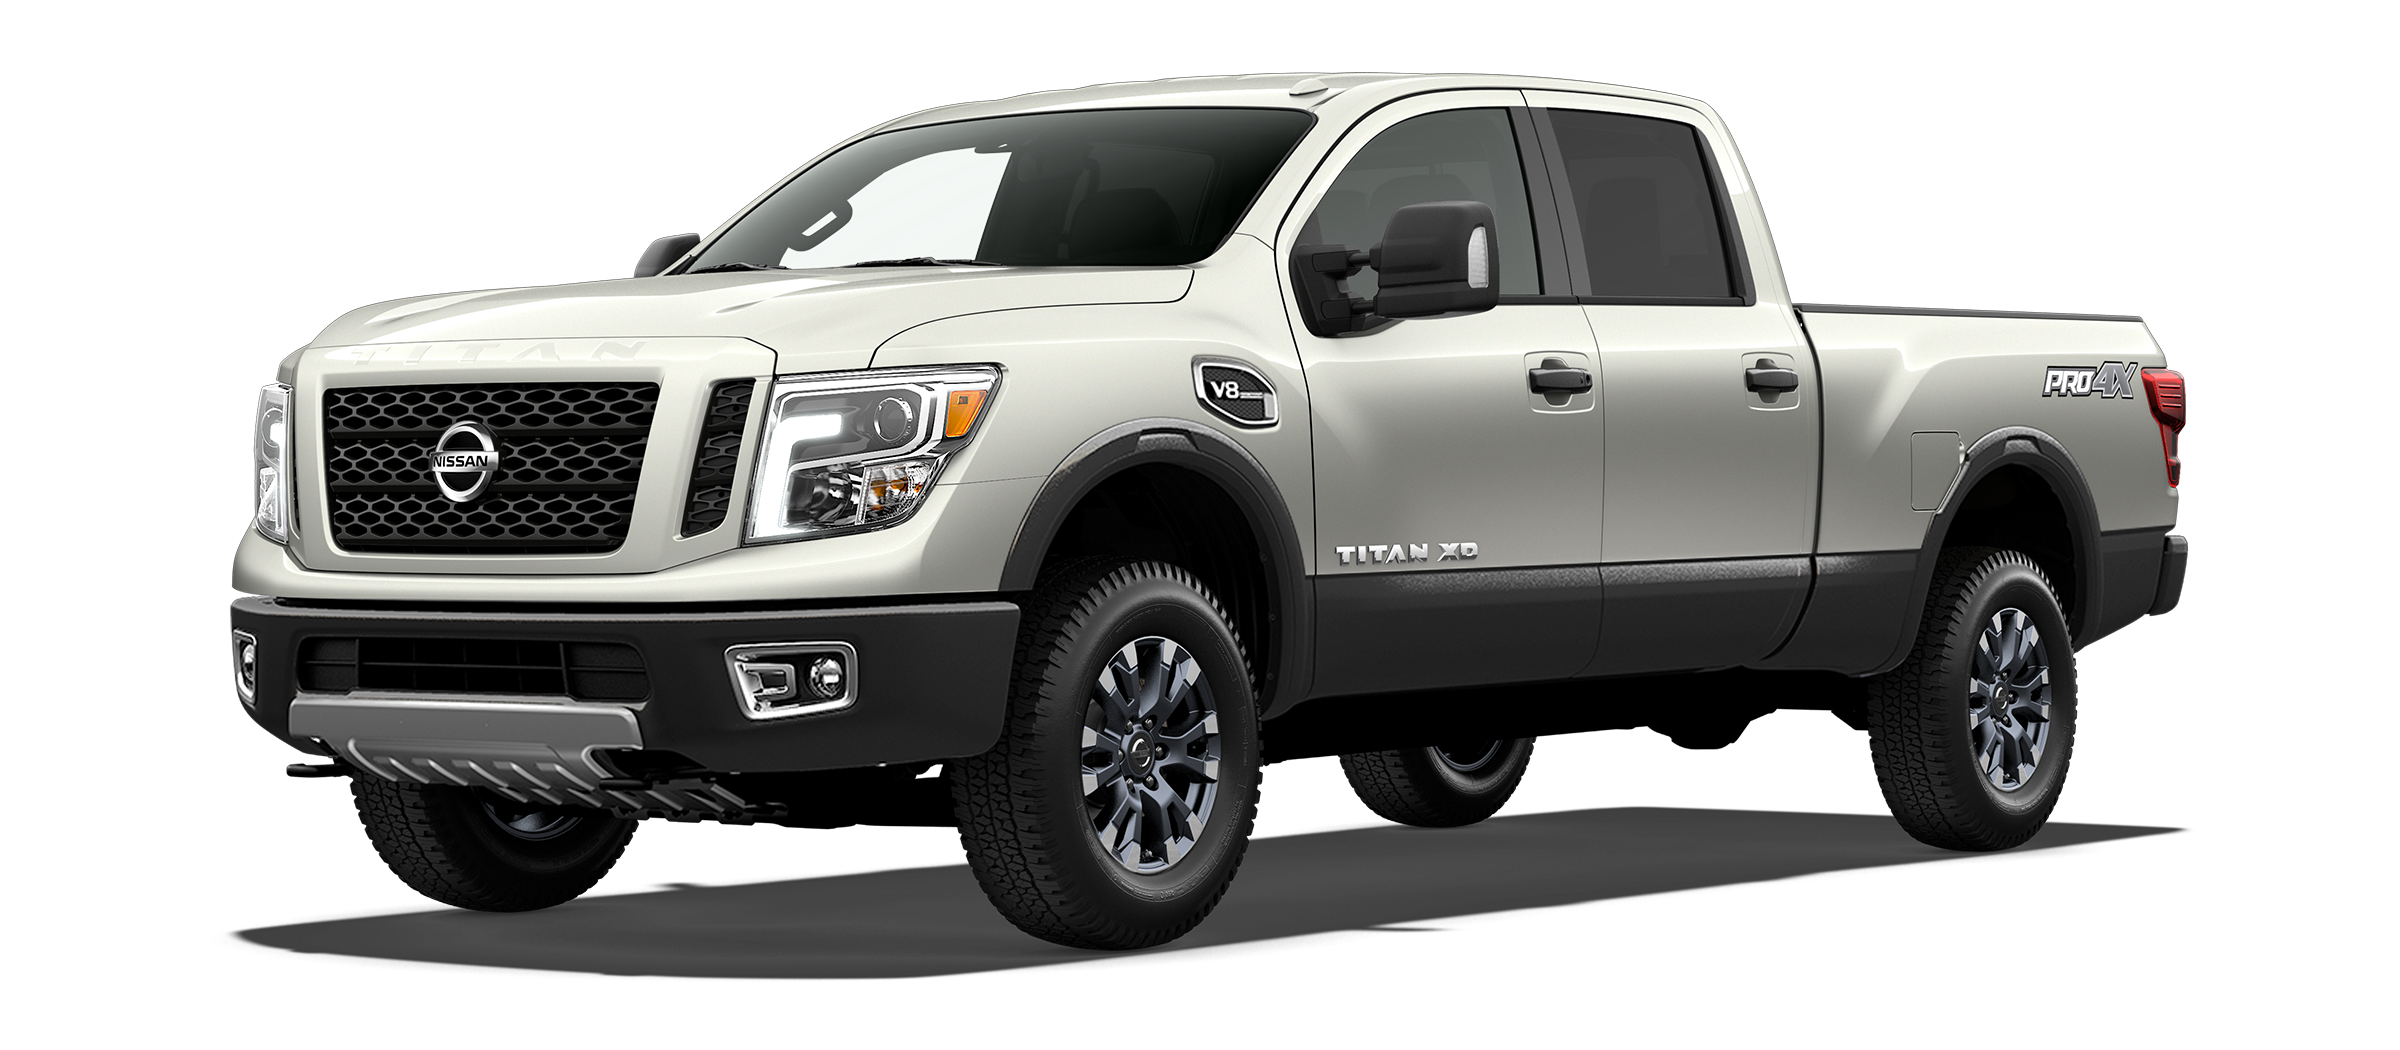 Nissan Titan Lease >> 2018 Nissan Titan XD Diesel Pricing, Features, Ratings and Reviews | Edmunds